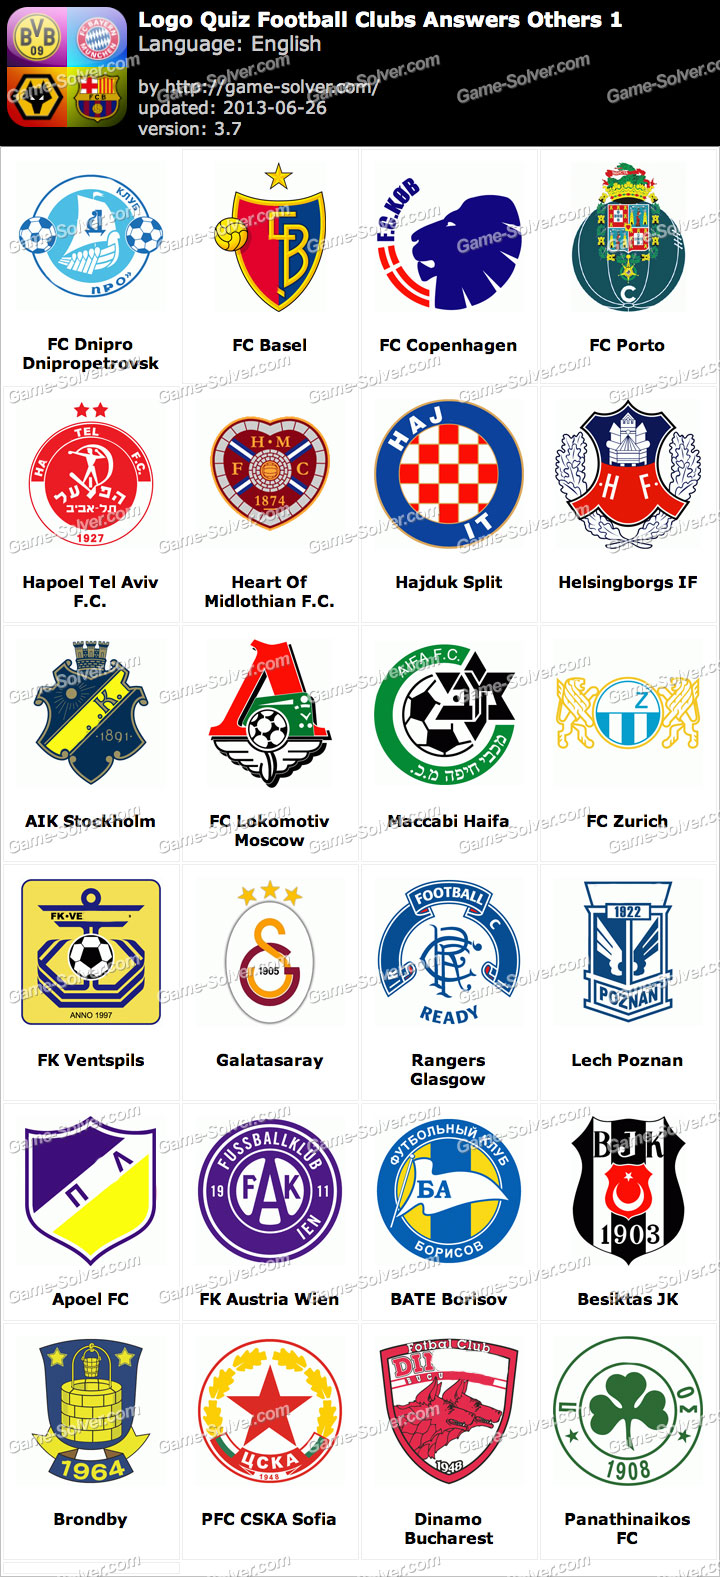 Logo Quiz Football Clubs Answers Others 1